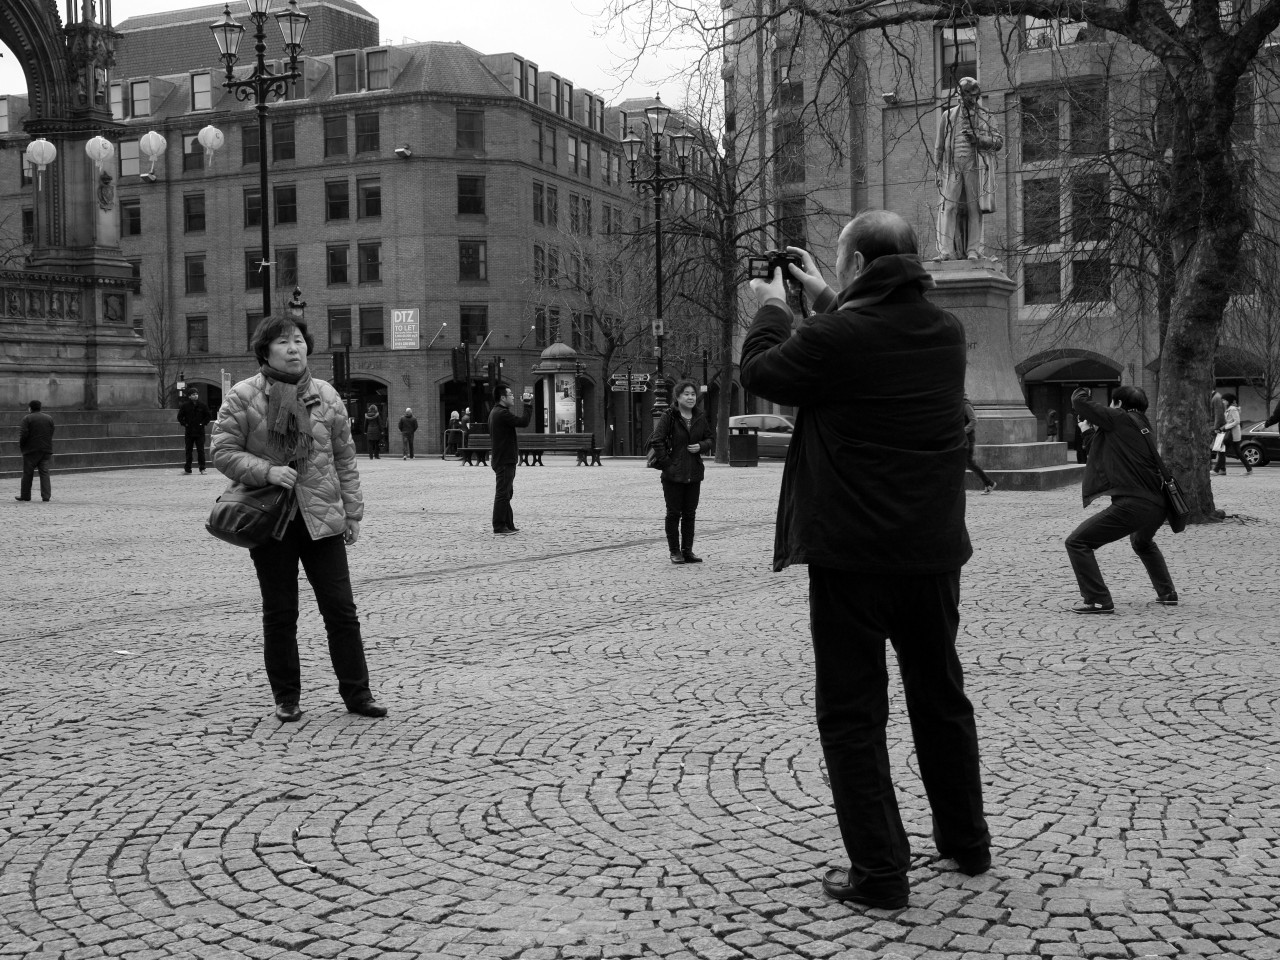 scavengedluxury:  Shooting postures. Manchester, February 2013.